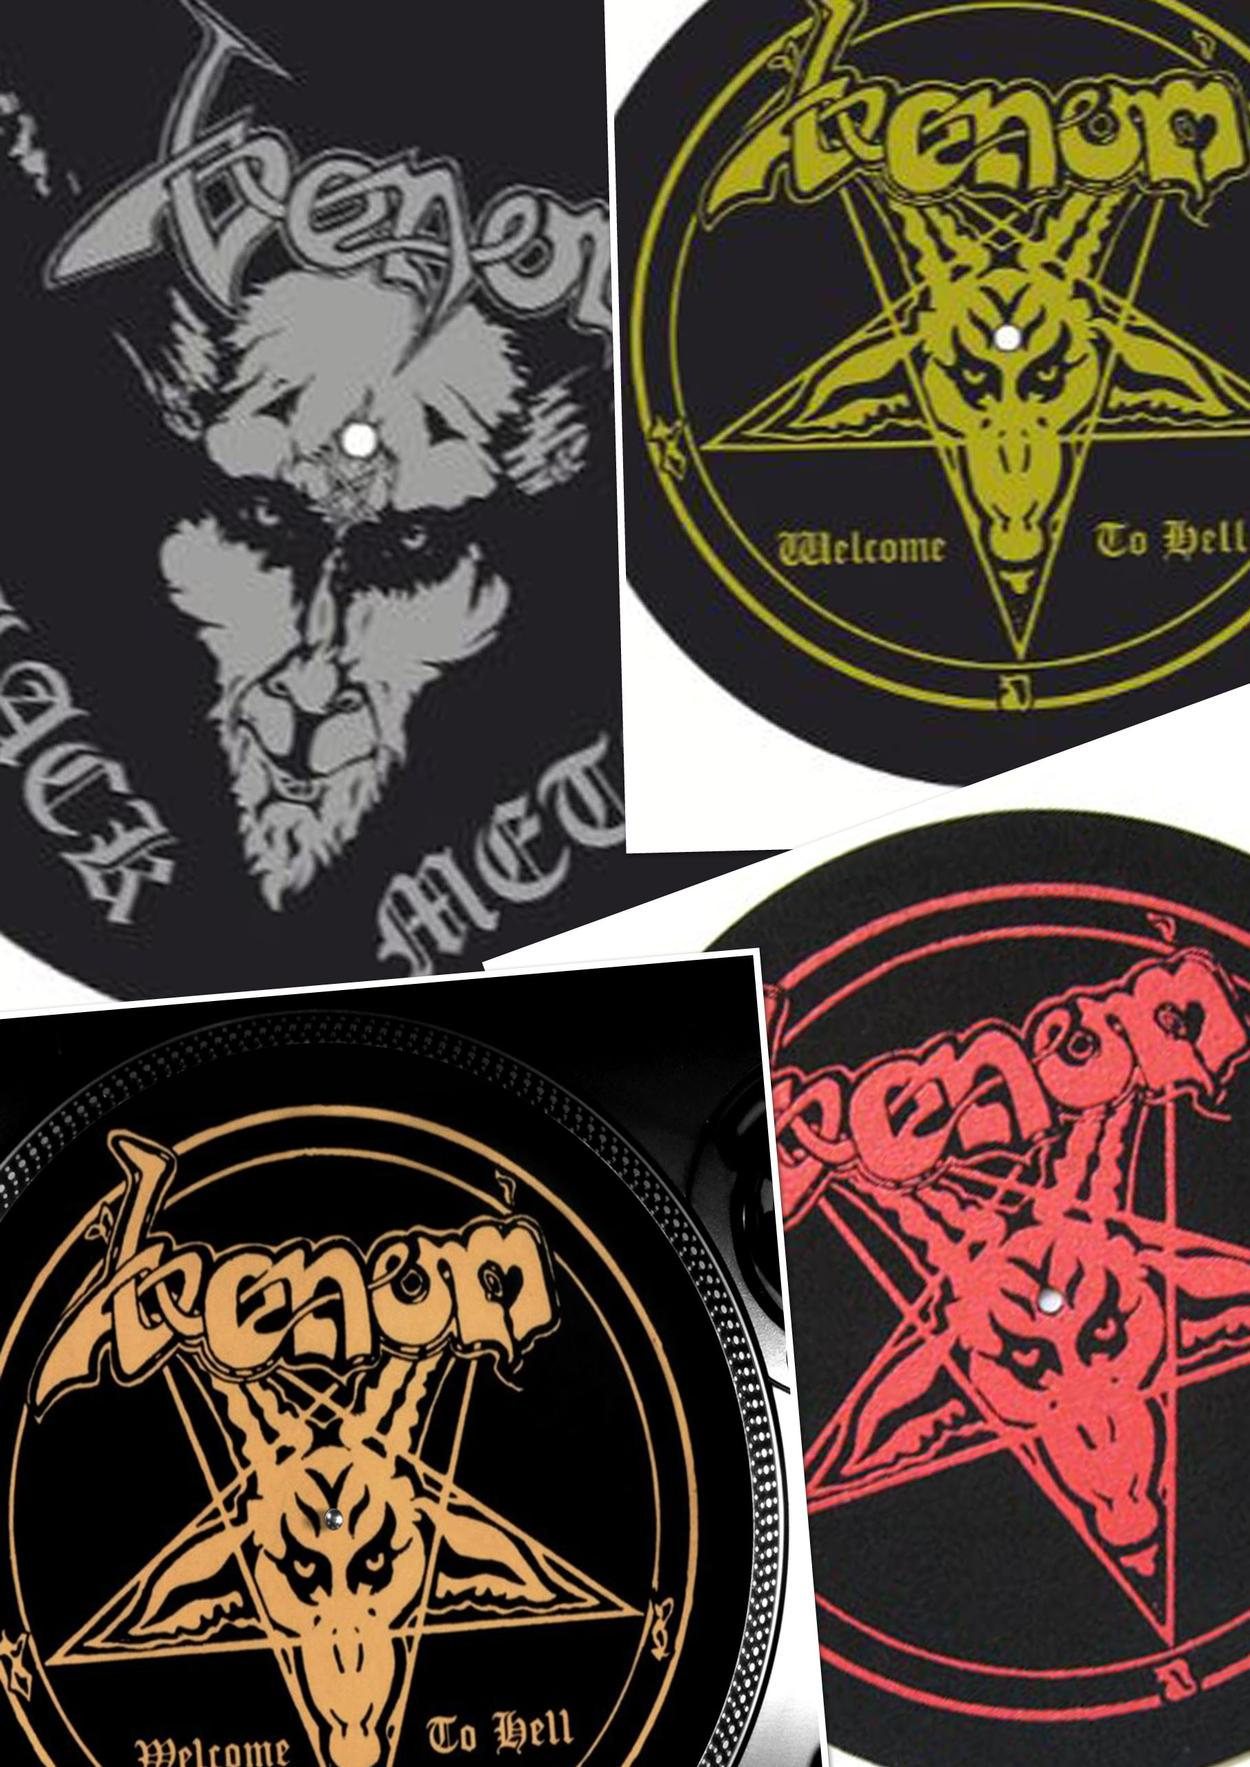 venom black metal collection homepage slipmats